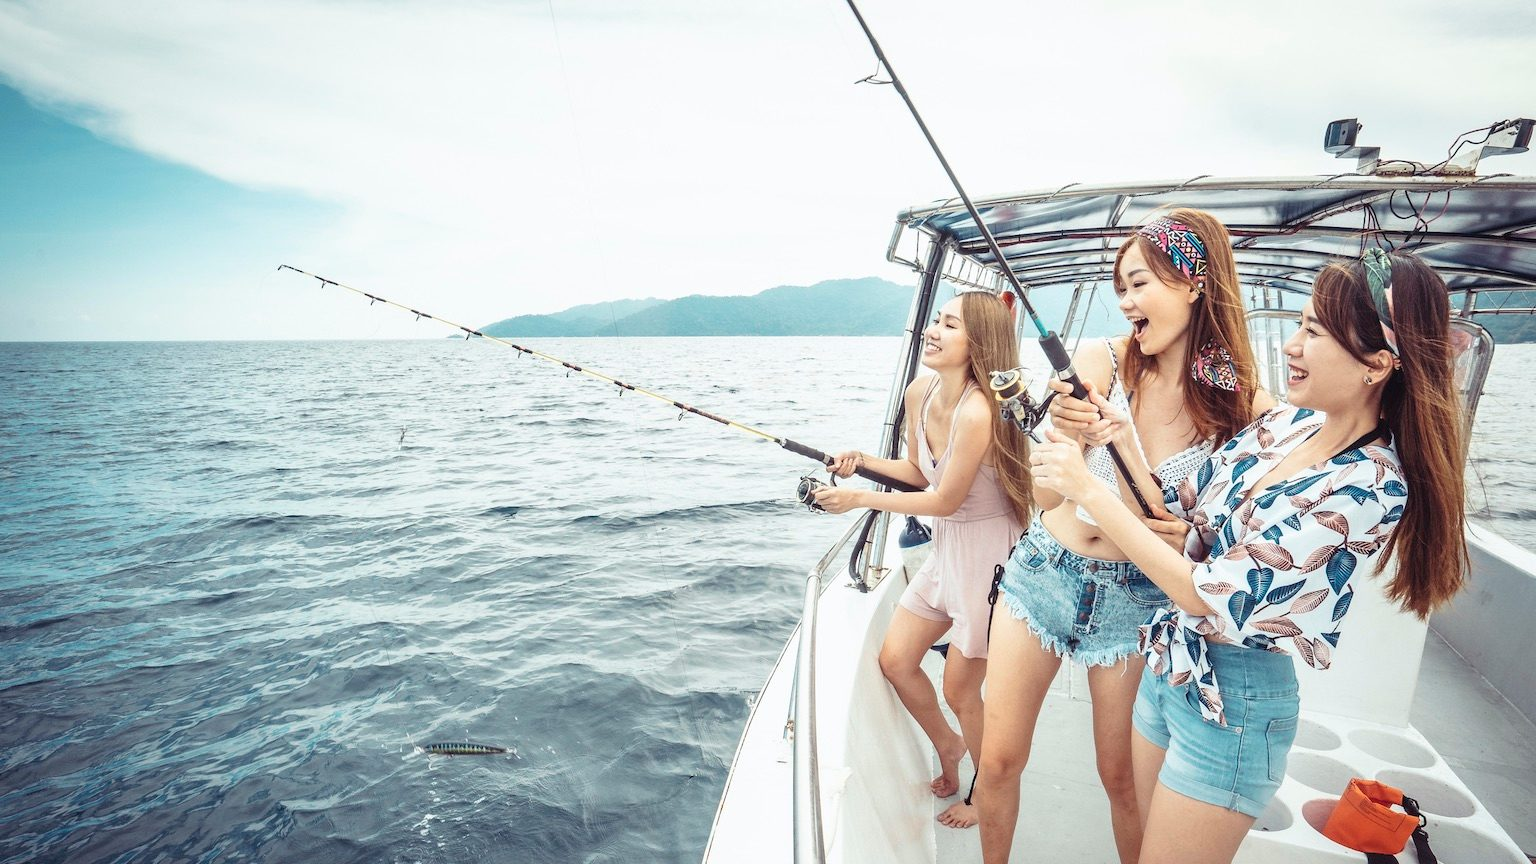 3 young teenage girls fishing on a boat in the middle of the ocean